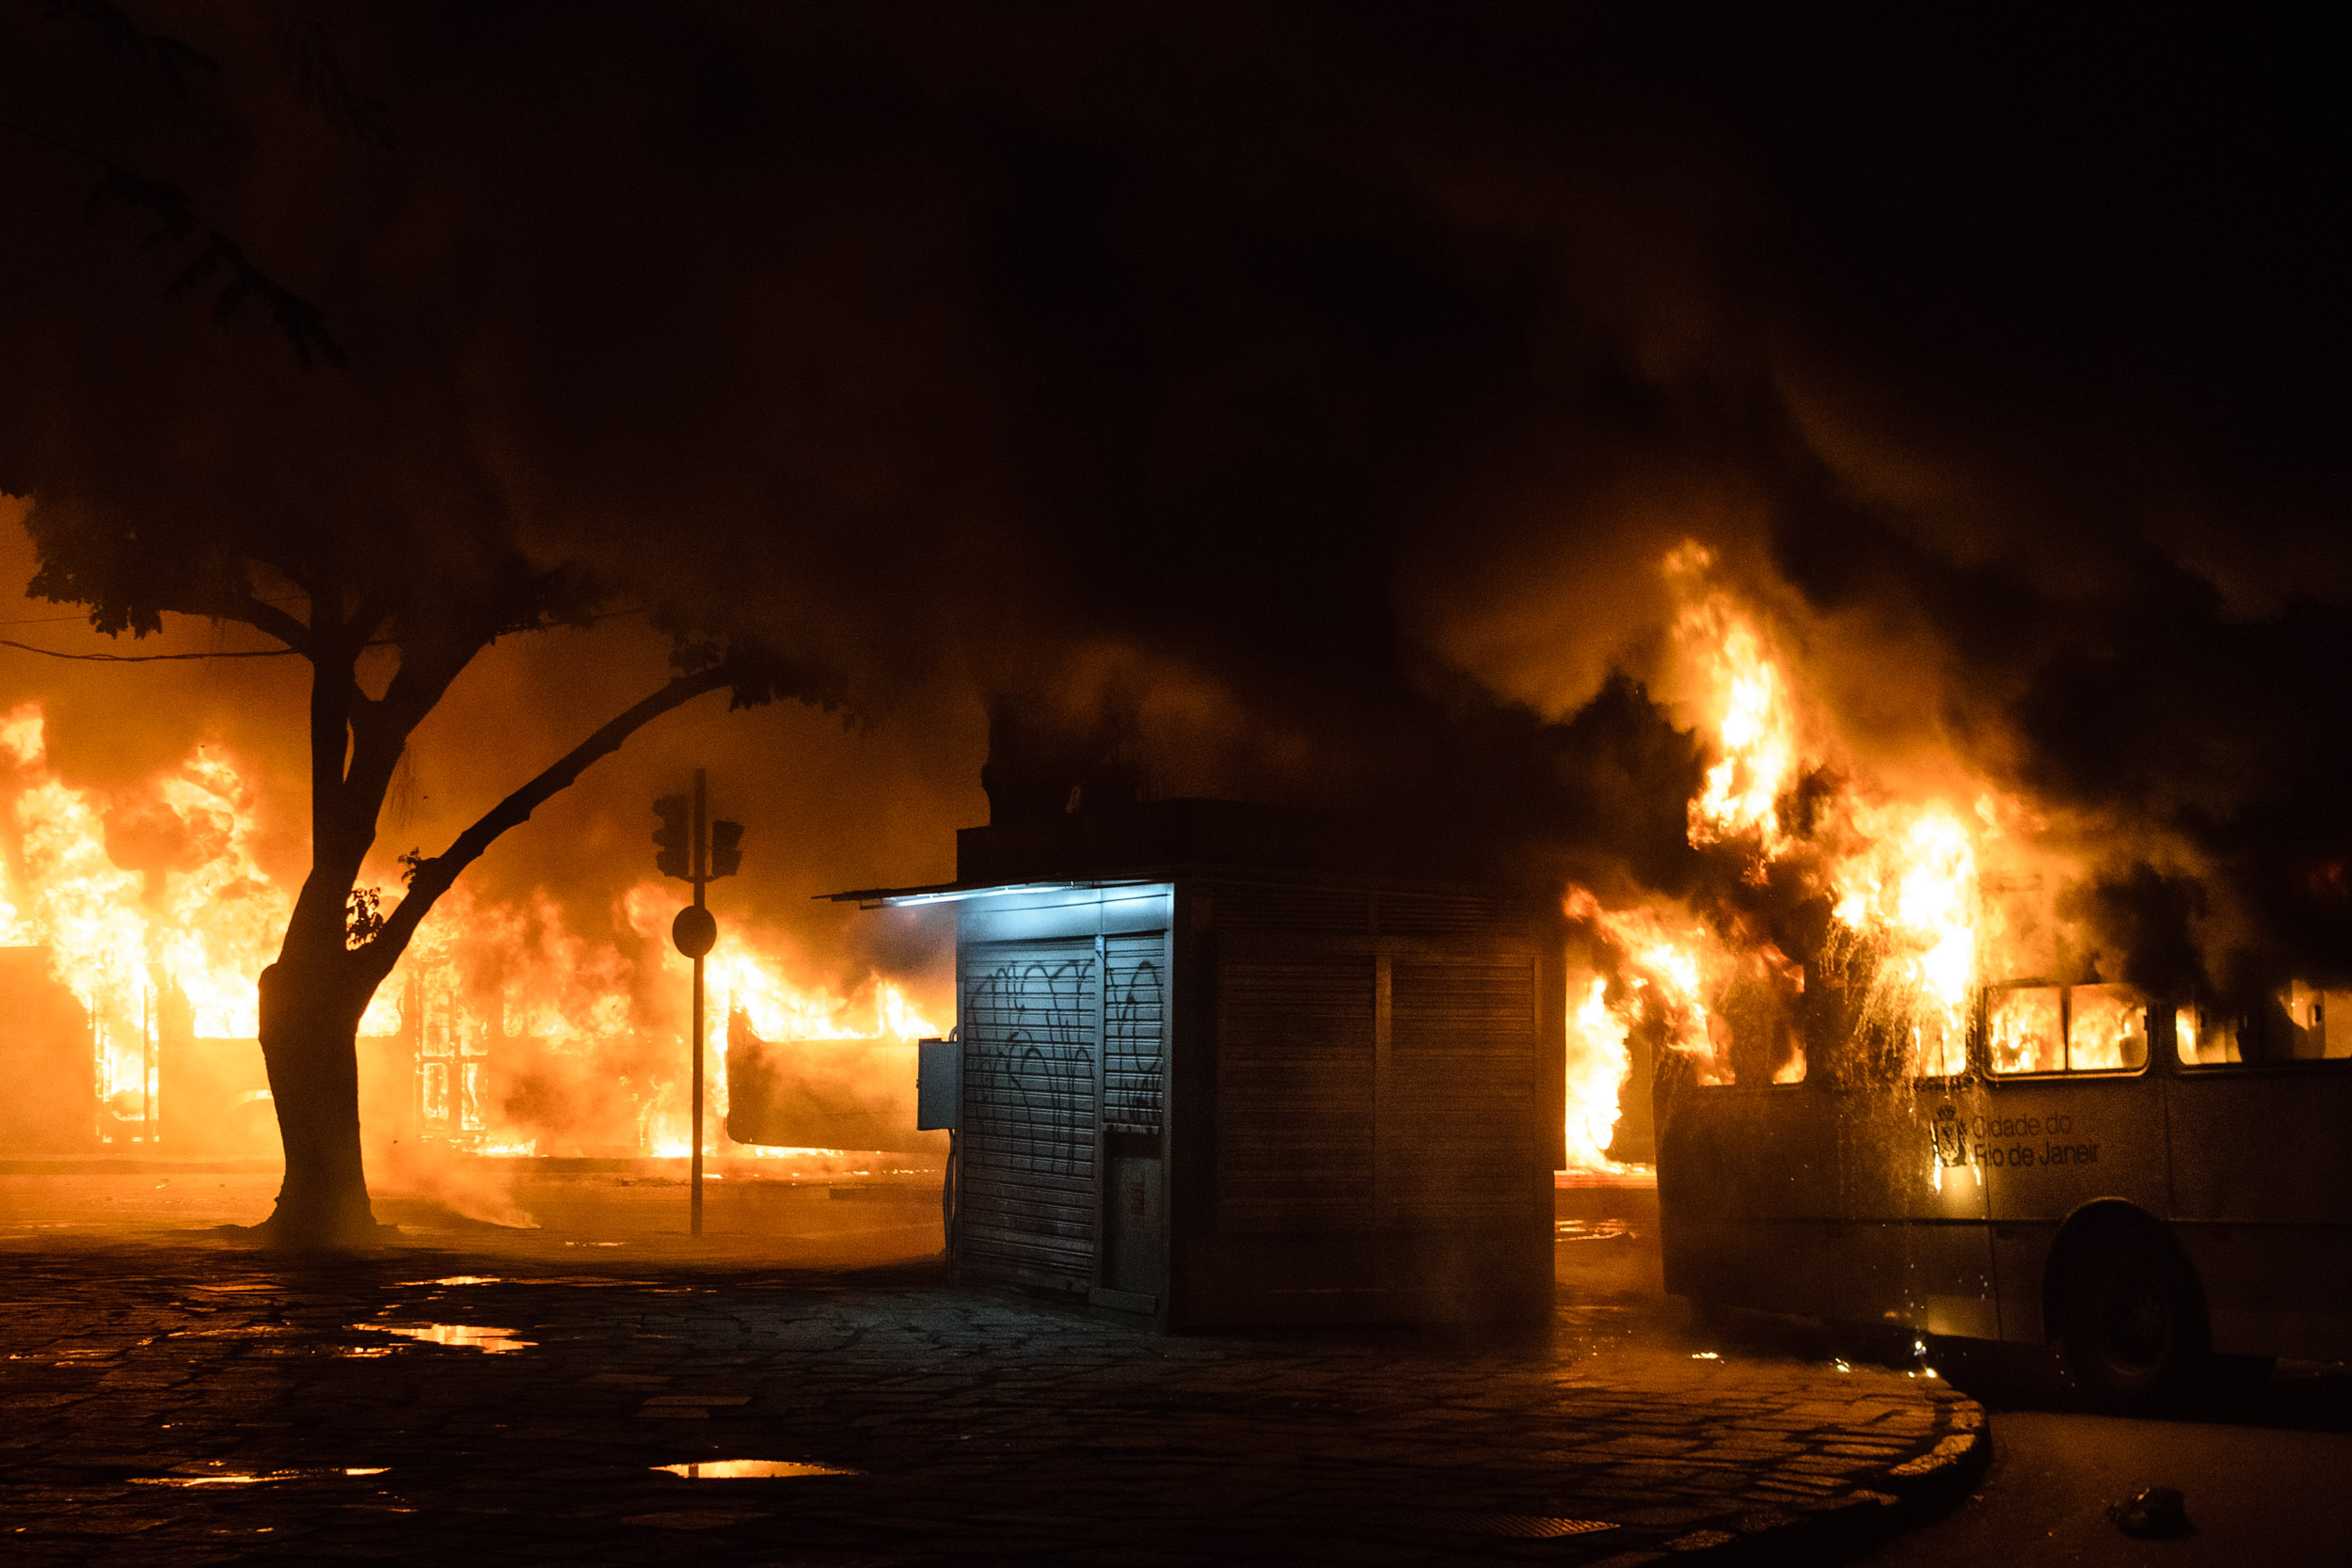 Buses' burn in downtown Rio after protest against corruption.